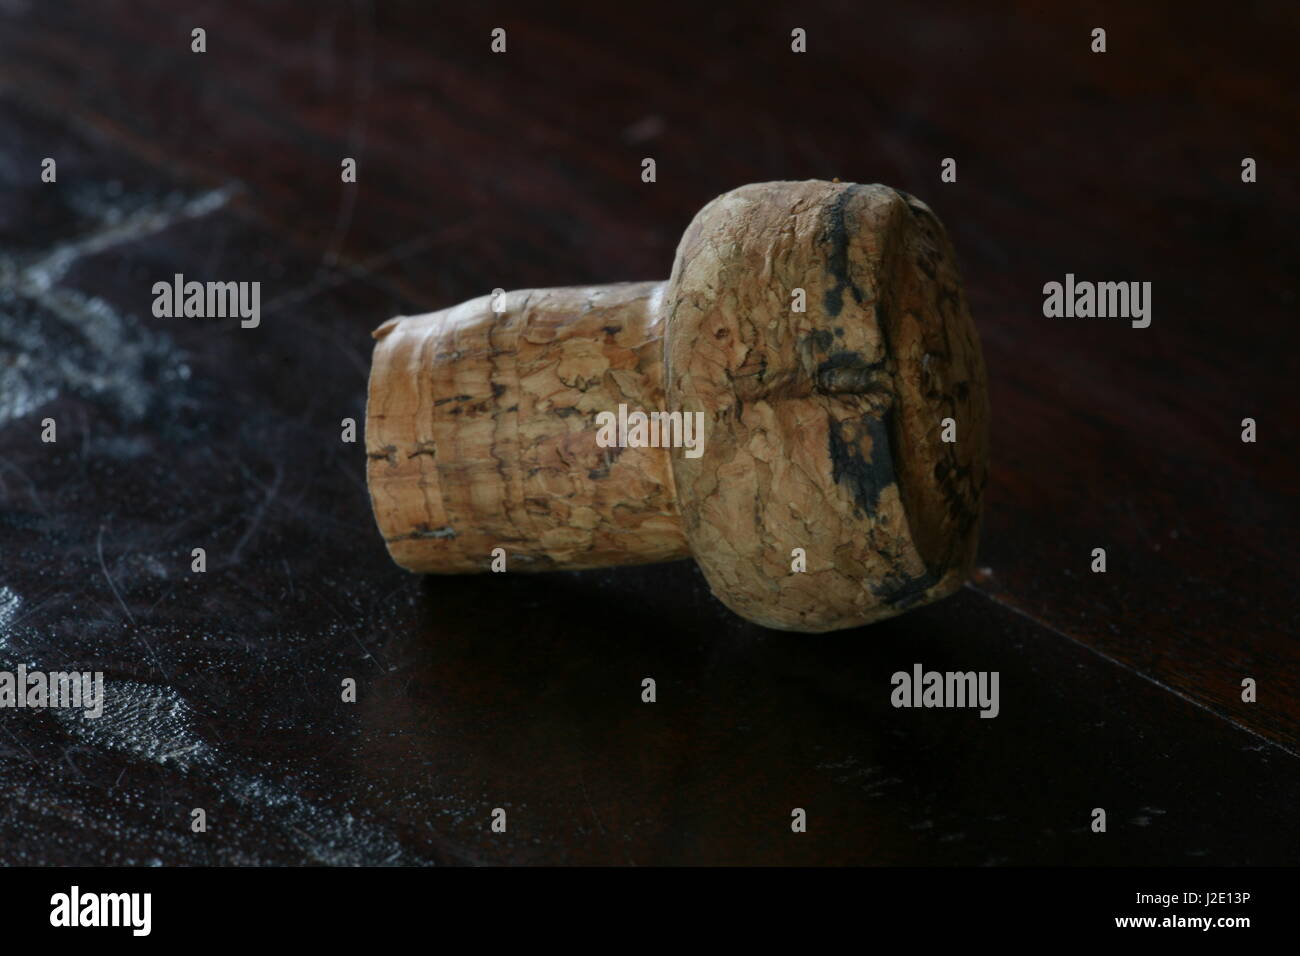 cork on wooden table - Stock Image